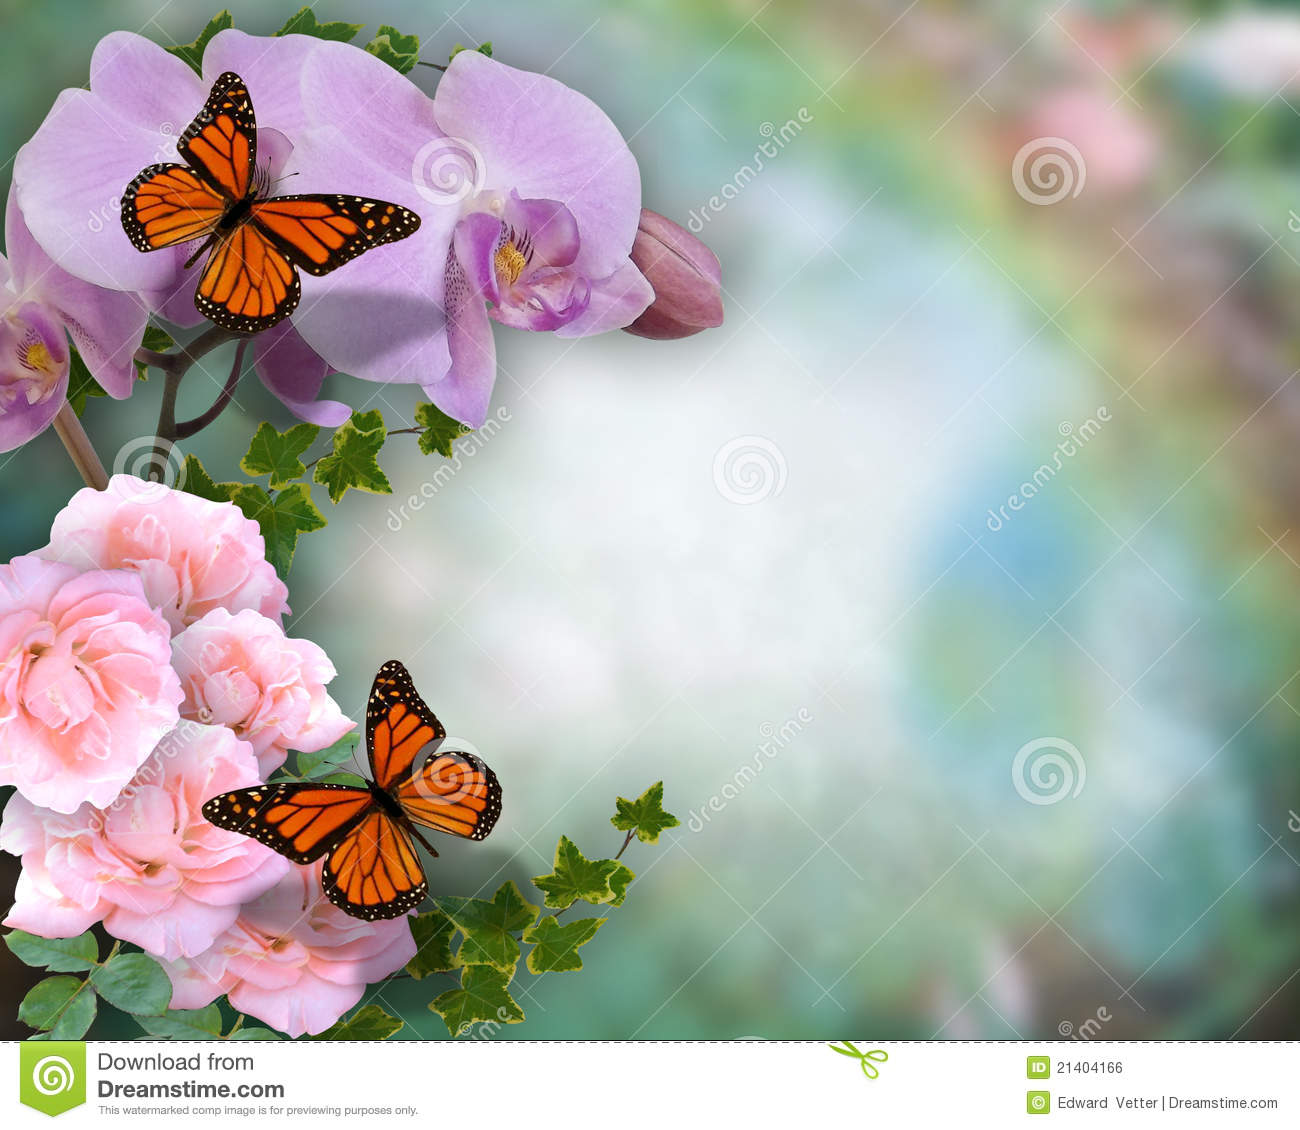 Butterflies Orchids And Roses Background Royalty Free Stock Image ...